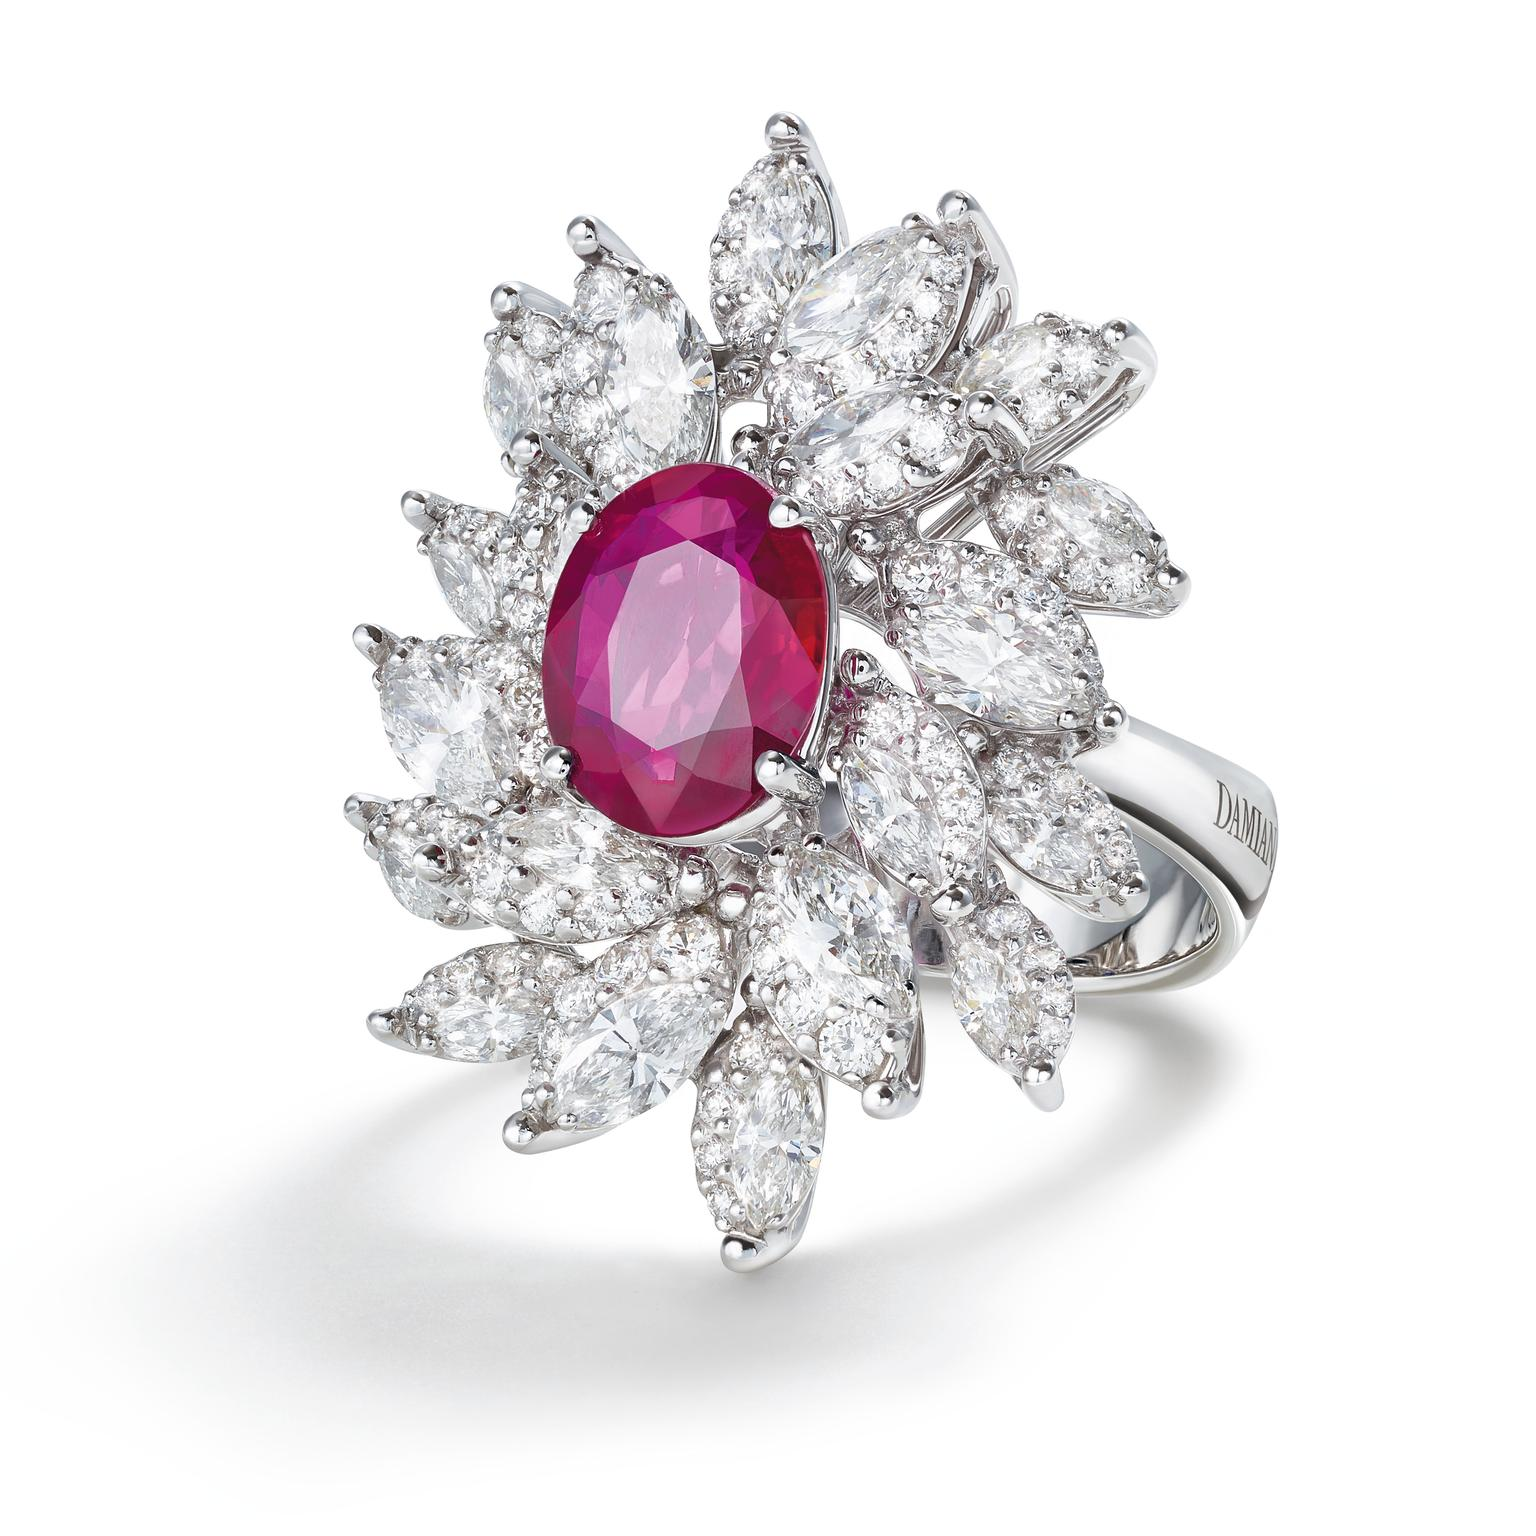 Damiani Emozioni collection ruby and diamond ring